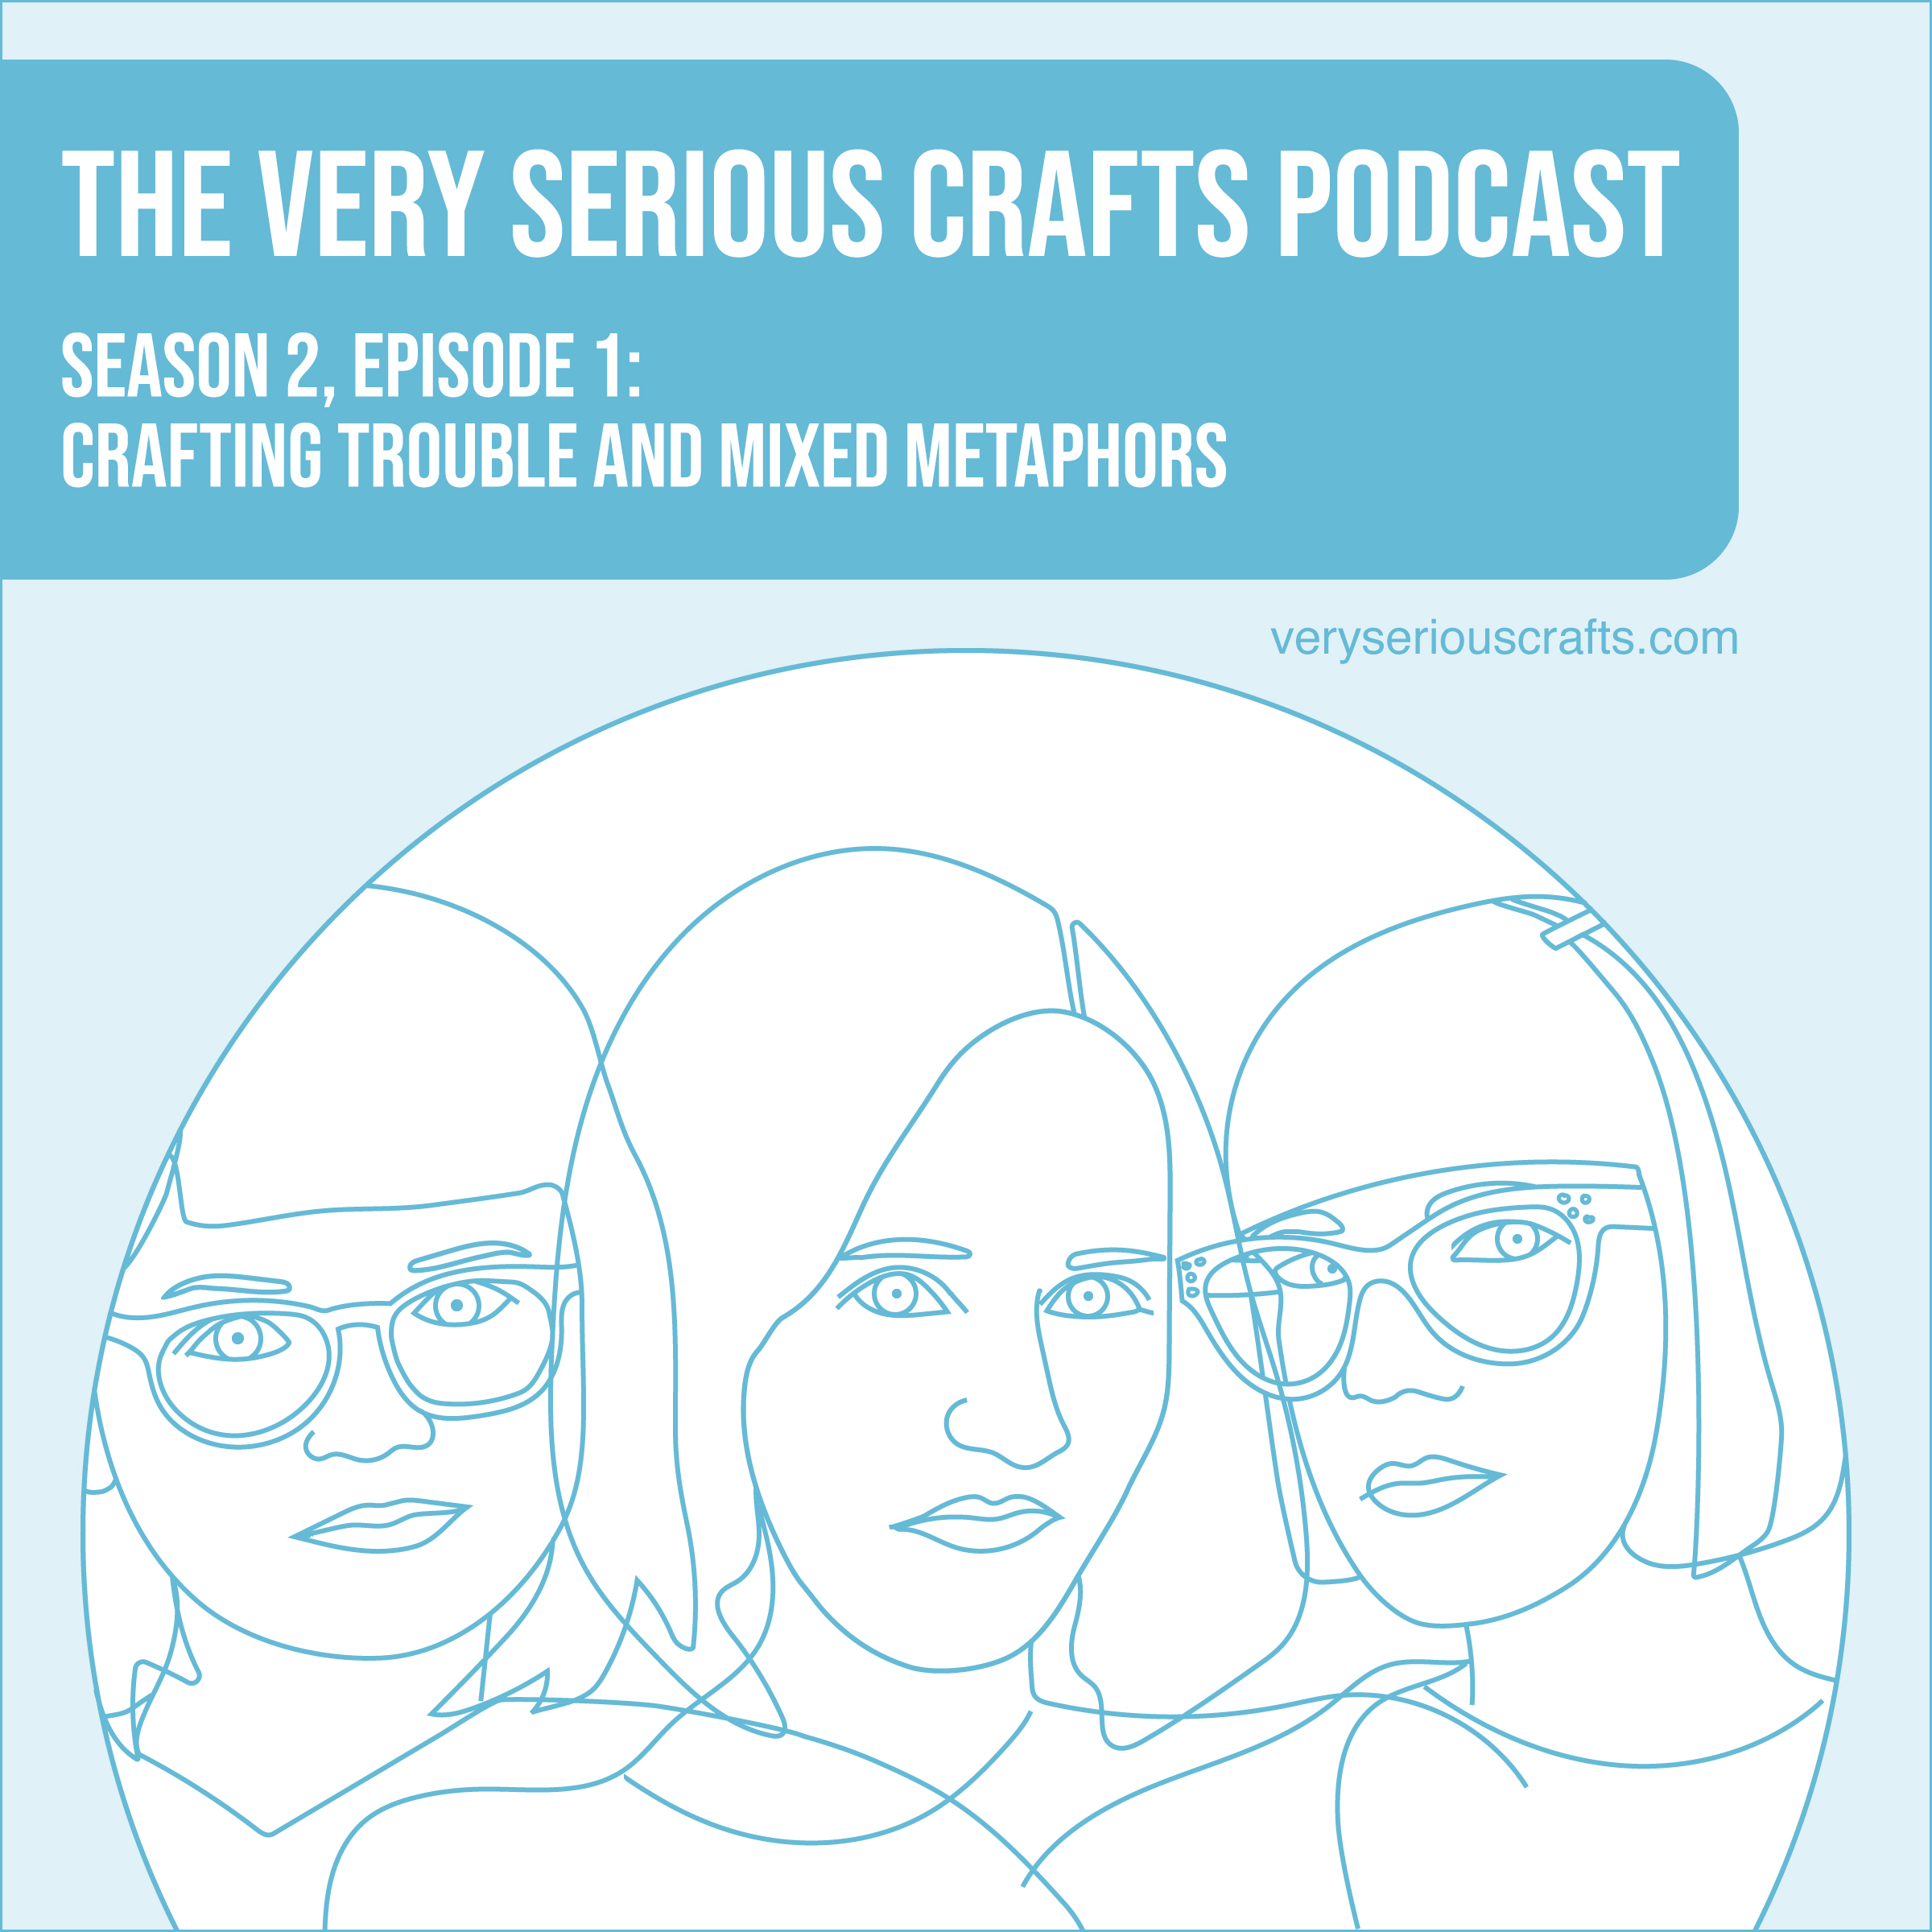 S2E01: Crafting Trouble and Mixed Metaphors